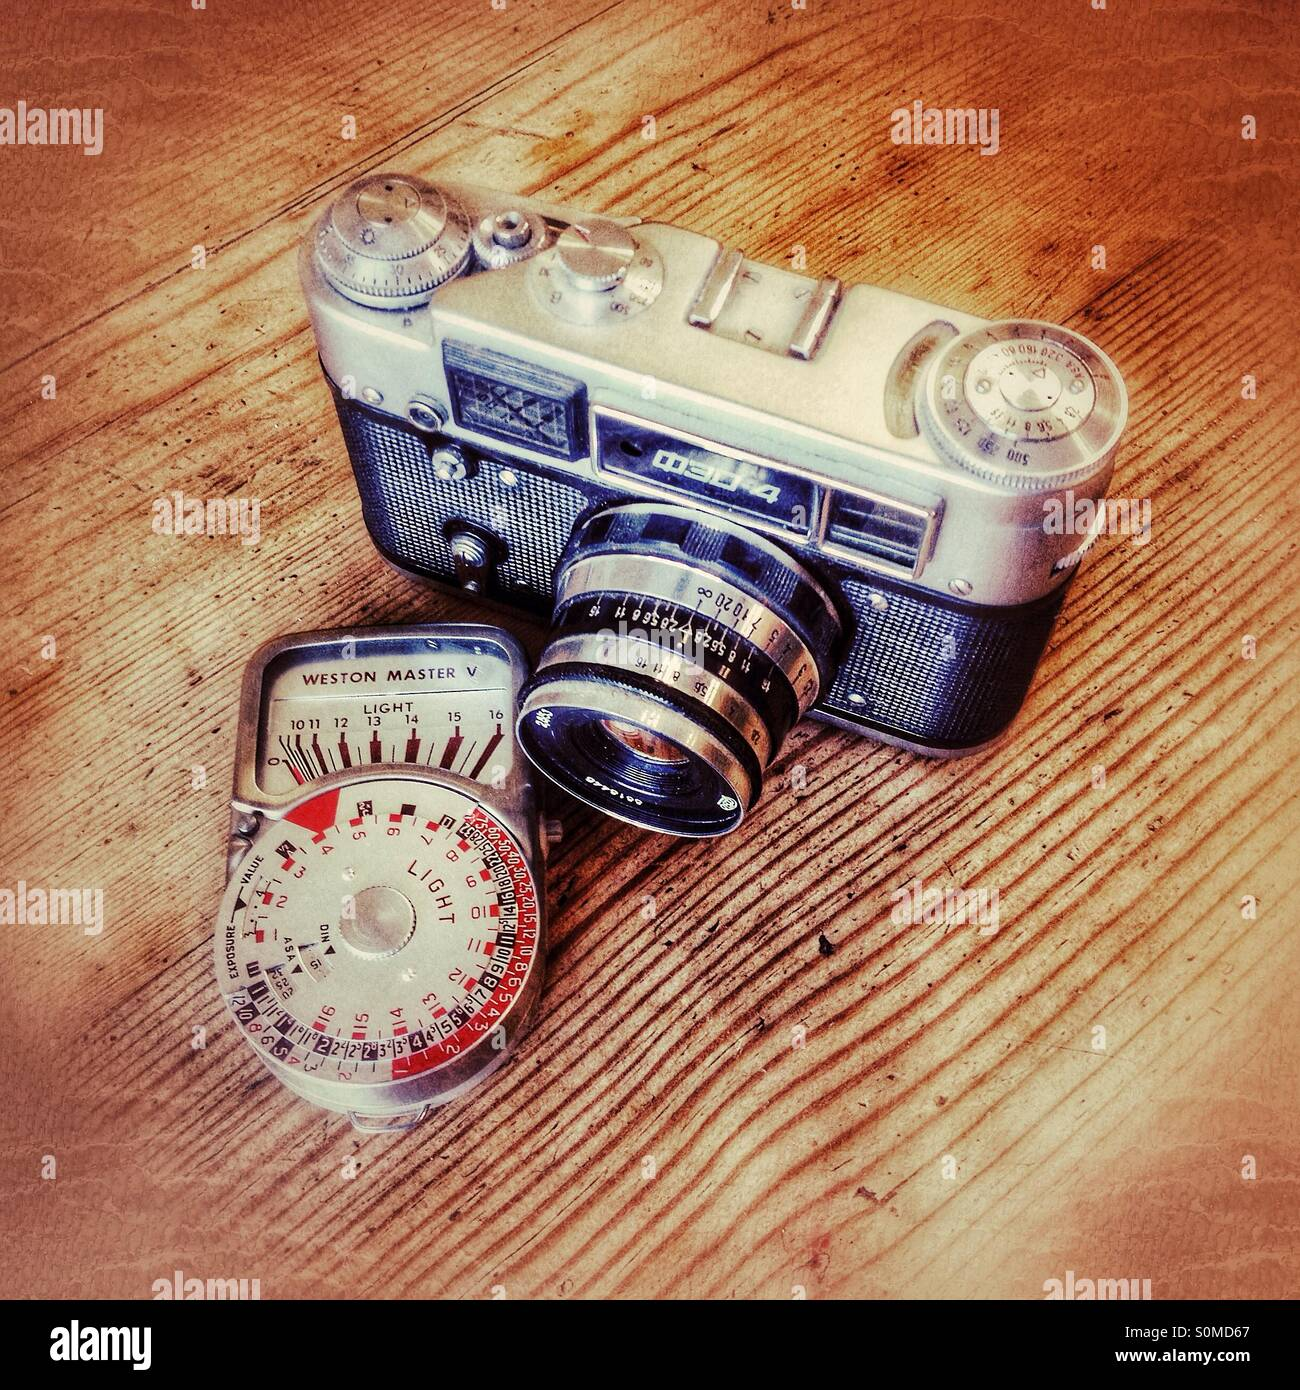 Old Russian FED4 film camera and Weston light meter - Stock Image